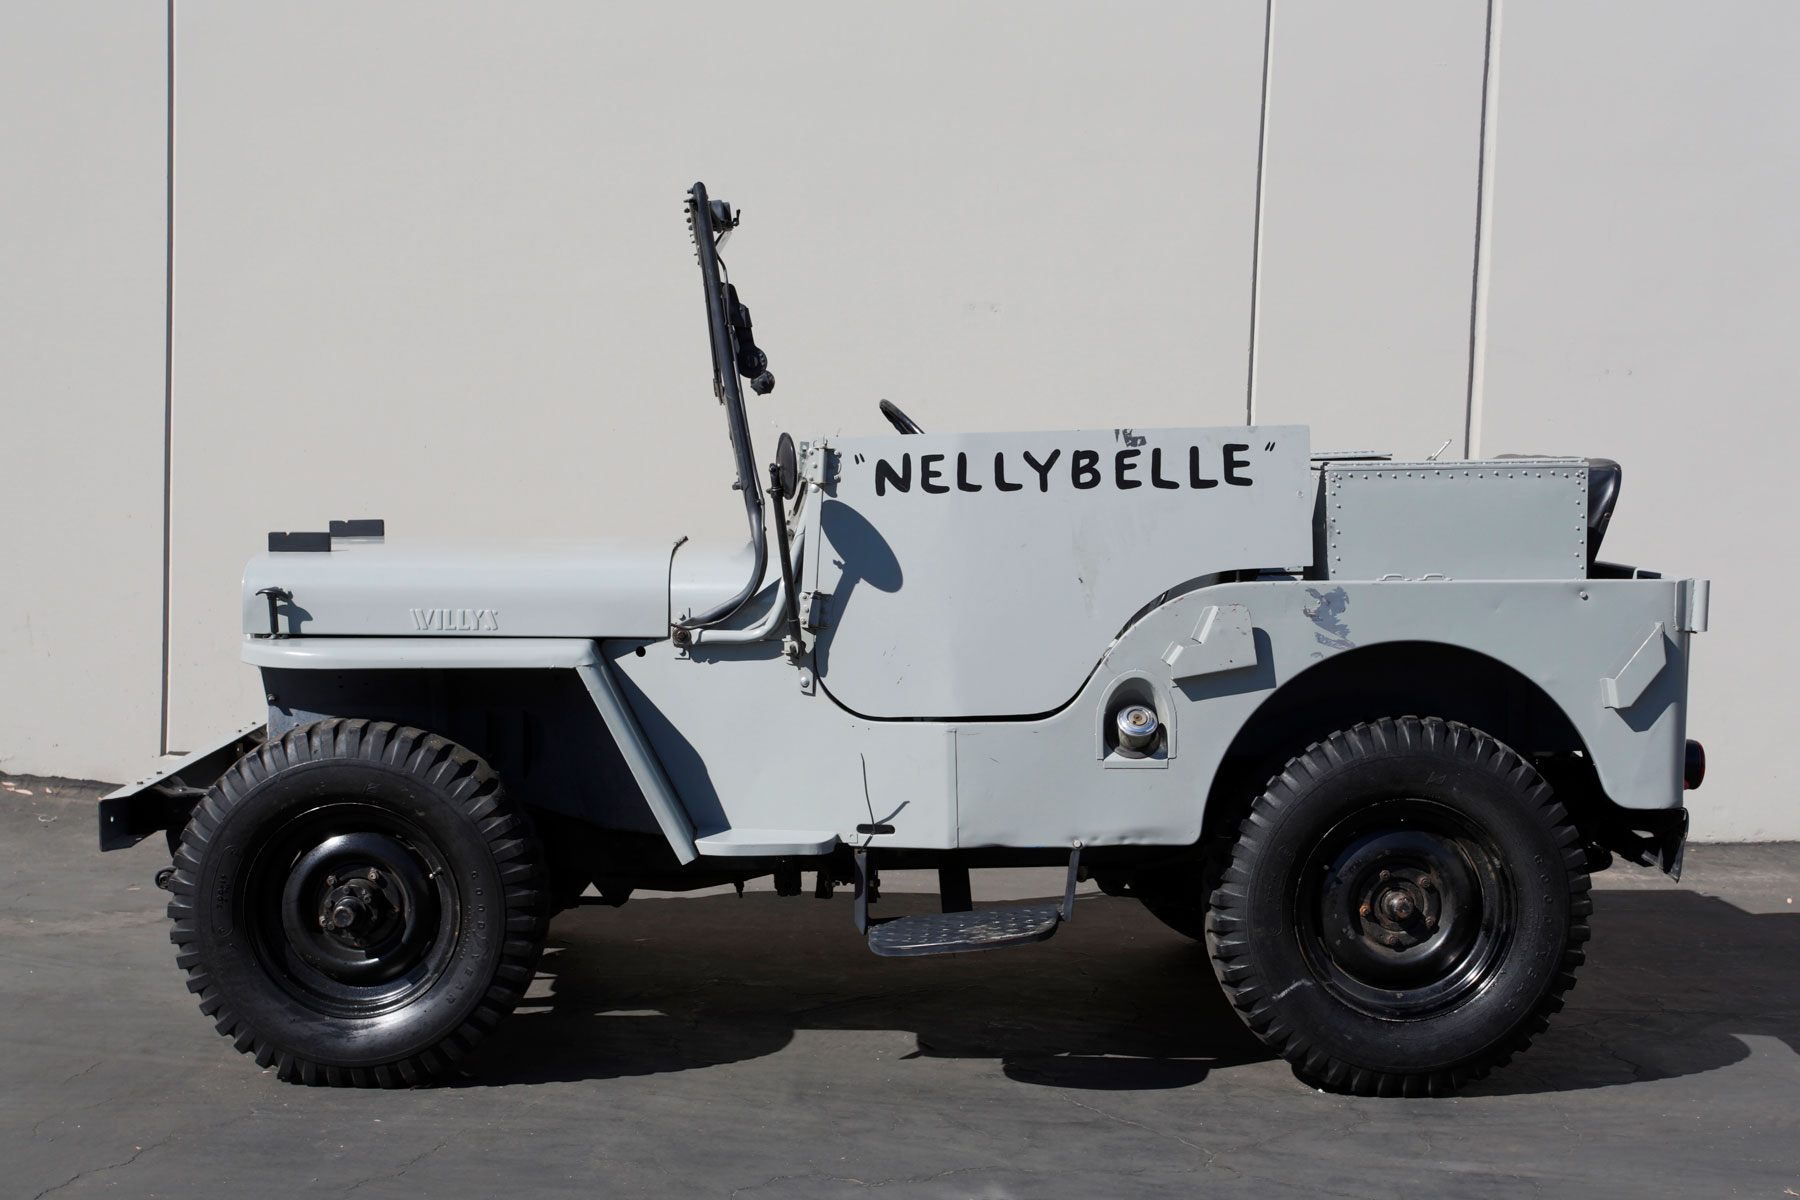 Nellybelle, the 1946 Willys CJ-2A Jeep profile